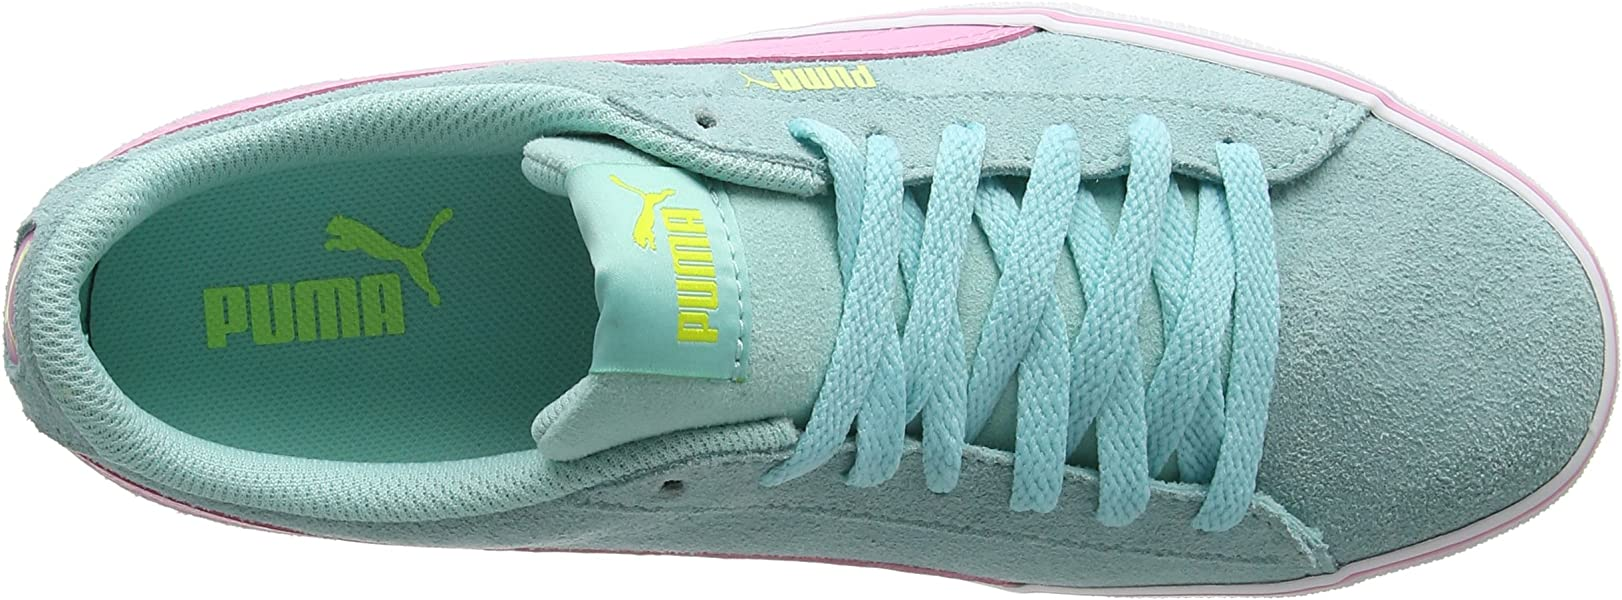 c39ae73acaa Puma Unisex Kids 1948 Vulc Jr Low-Top Sneakers Aruba Blue-Prism Pink 10.  Back. Double-tap to zoom